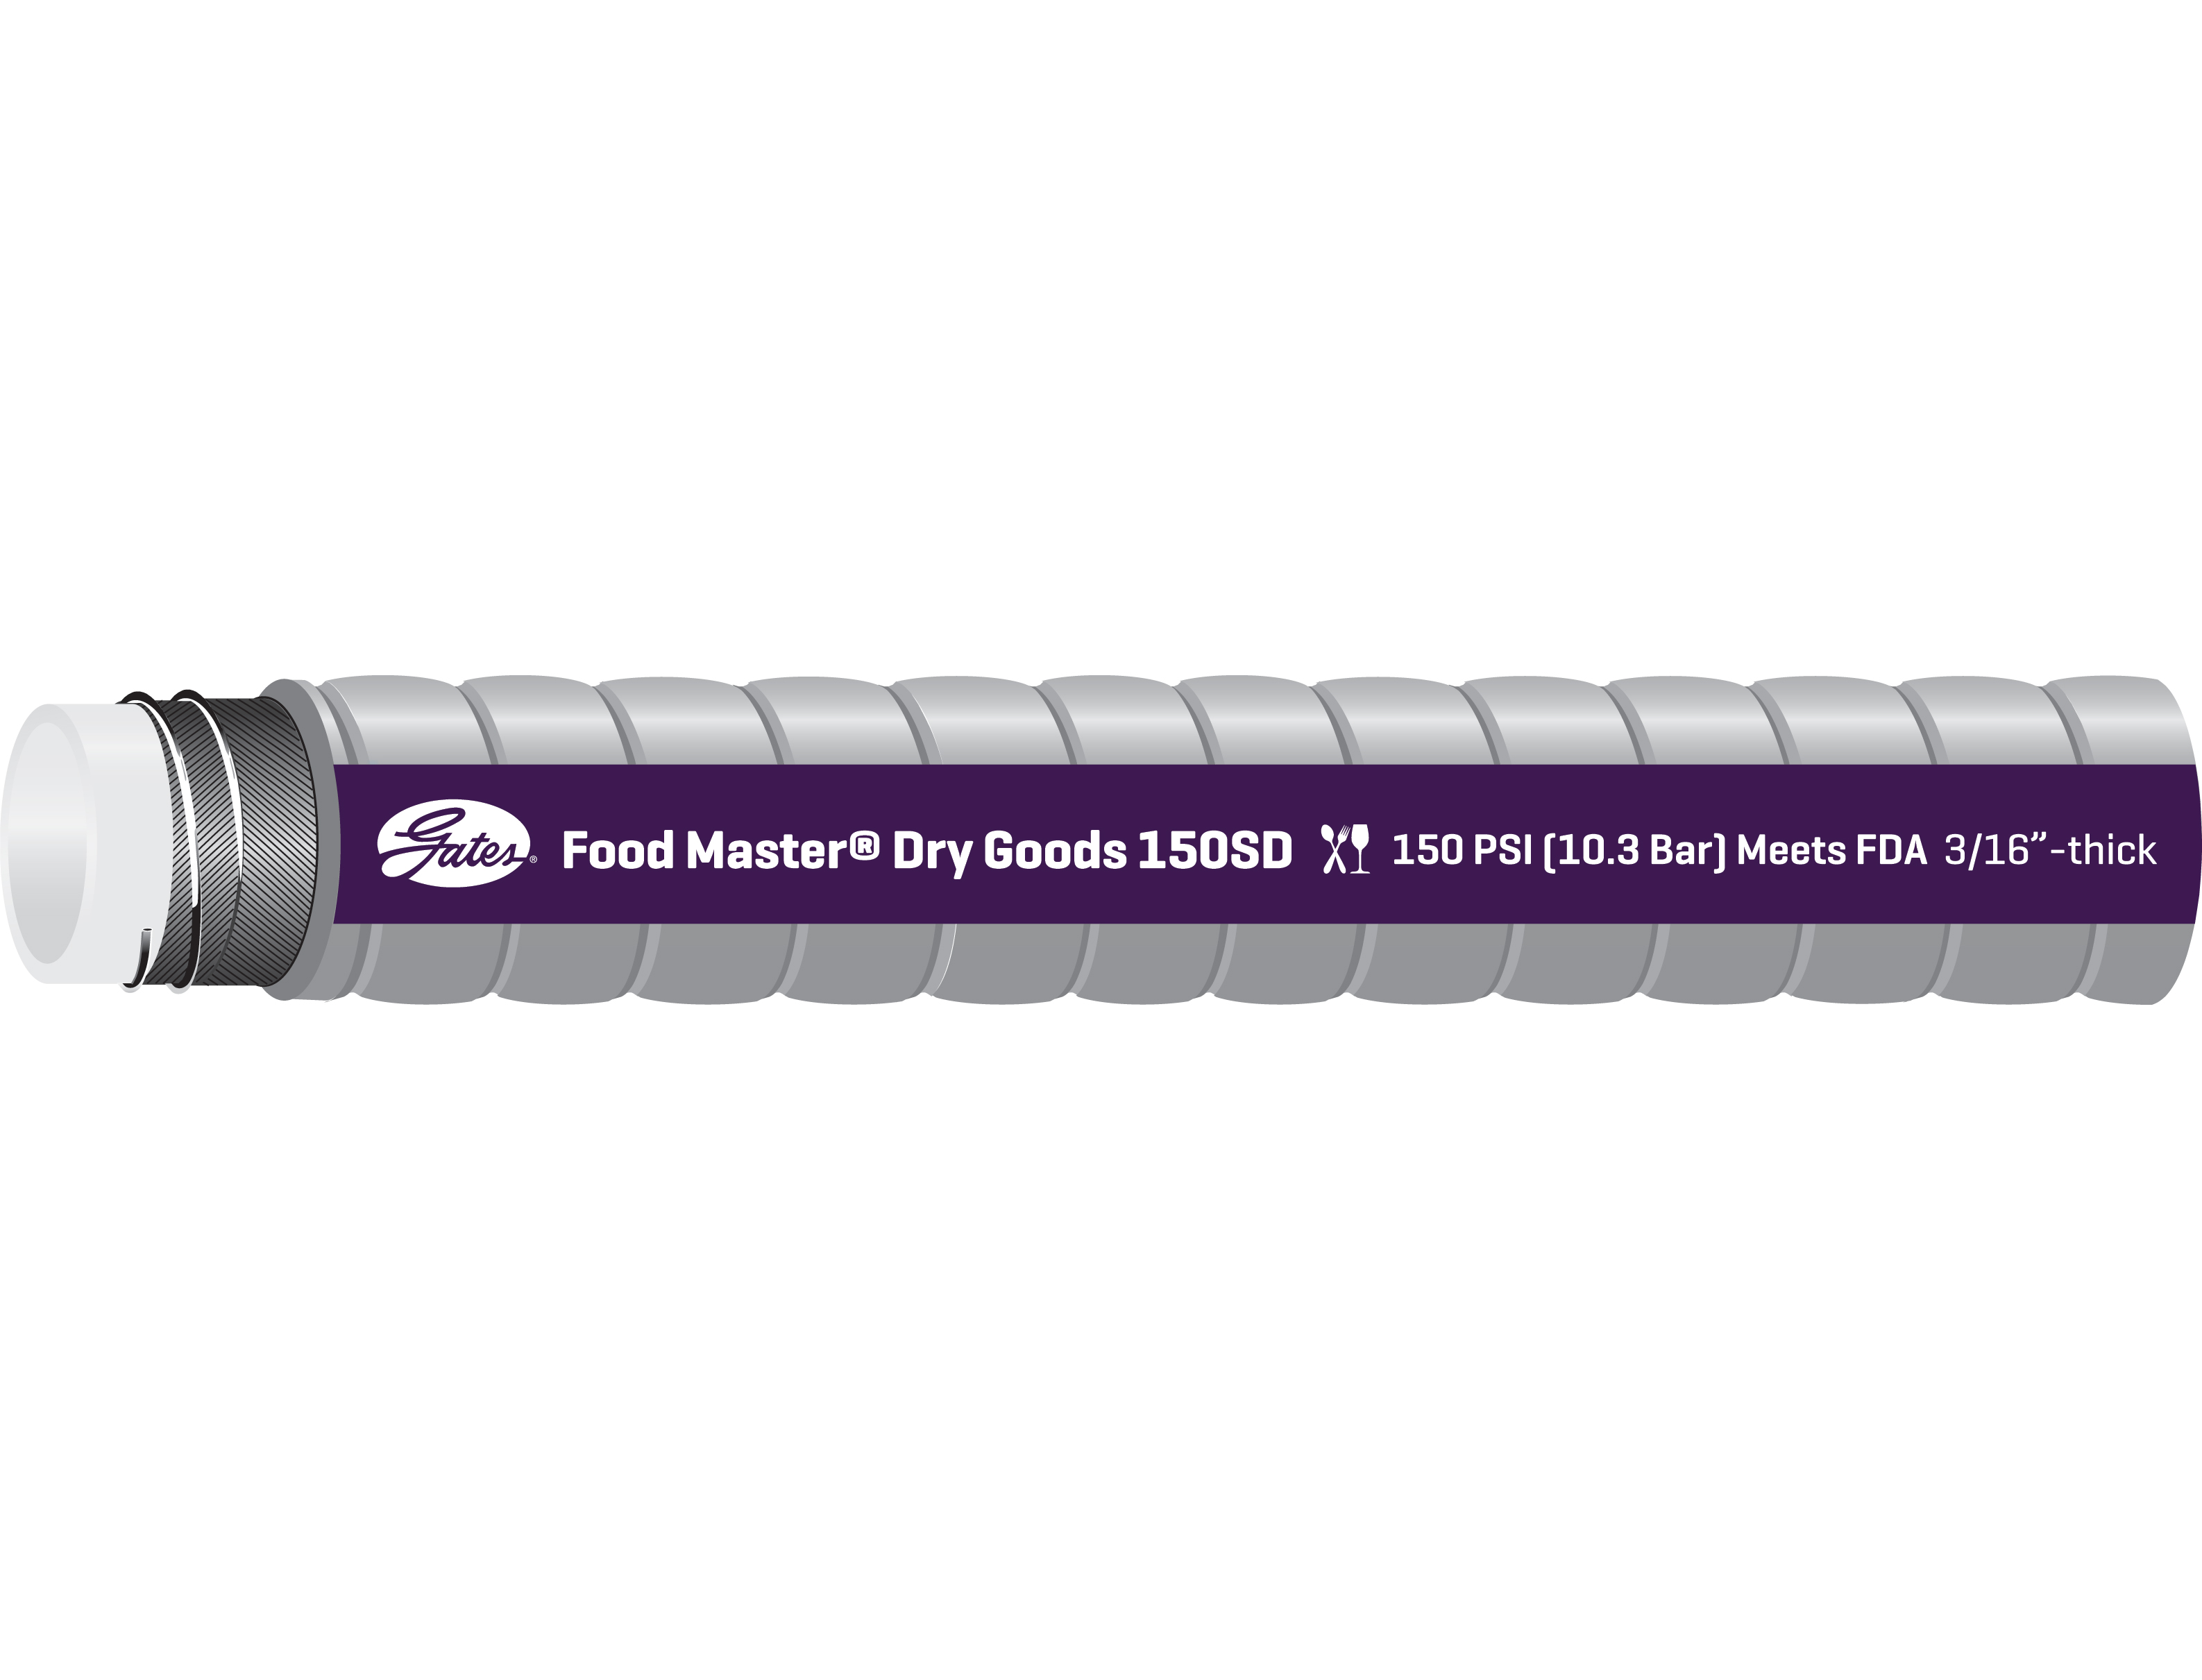 Food Master Dry Goods (50-150)SD Suction Transfer Hose